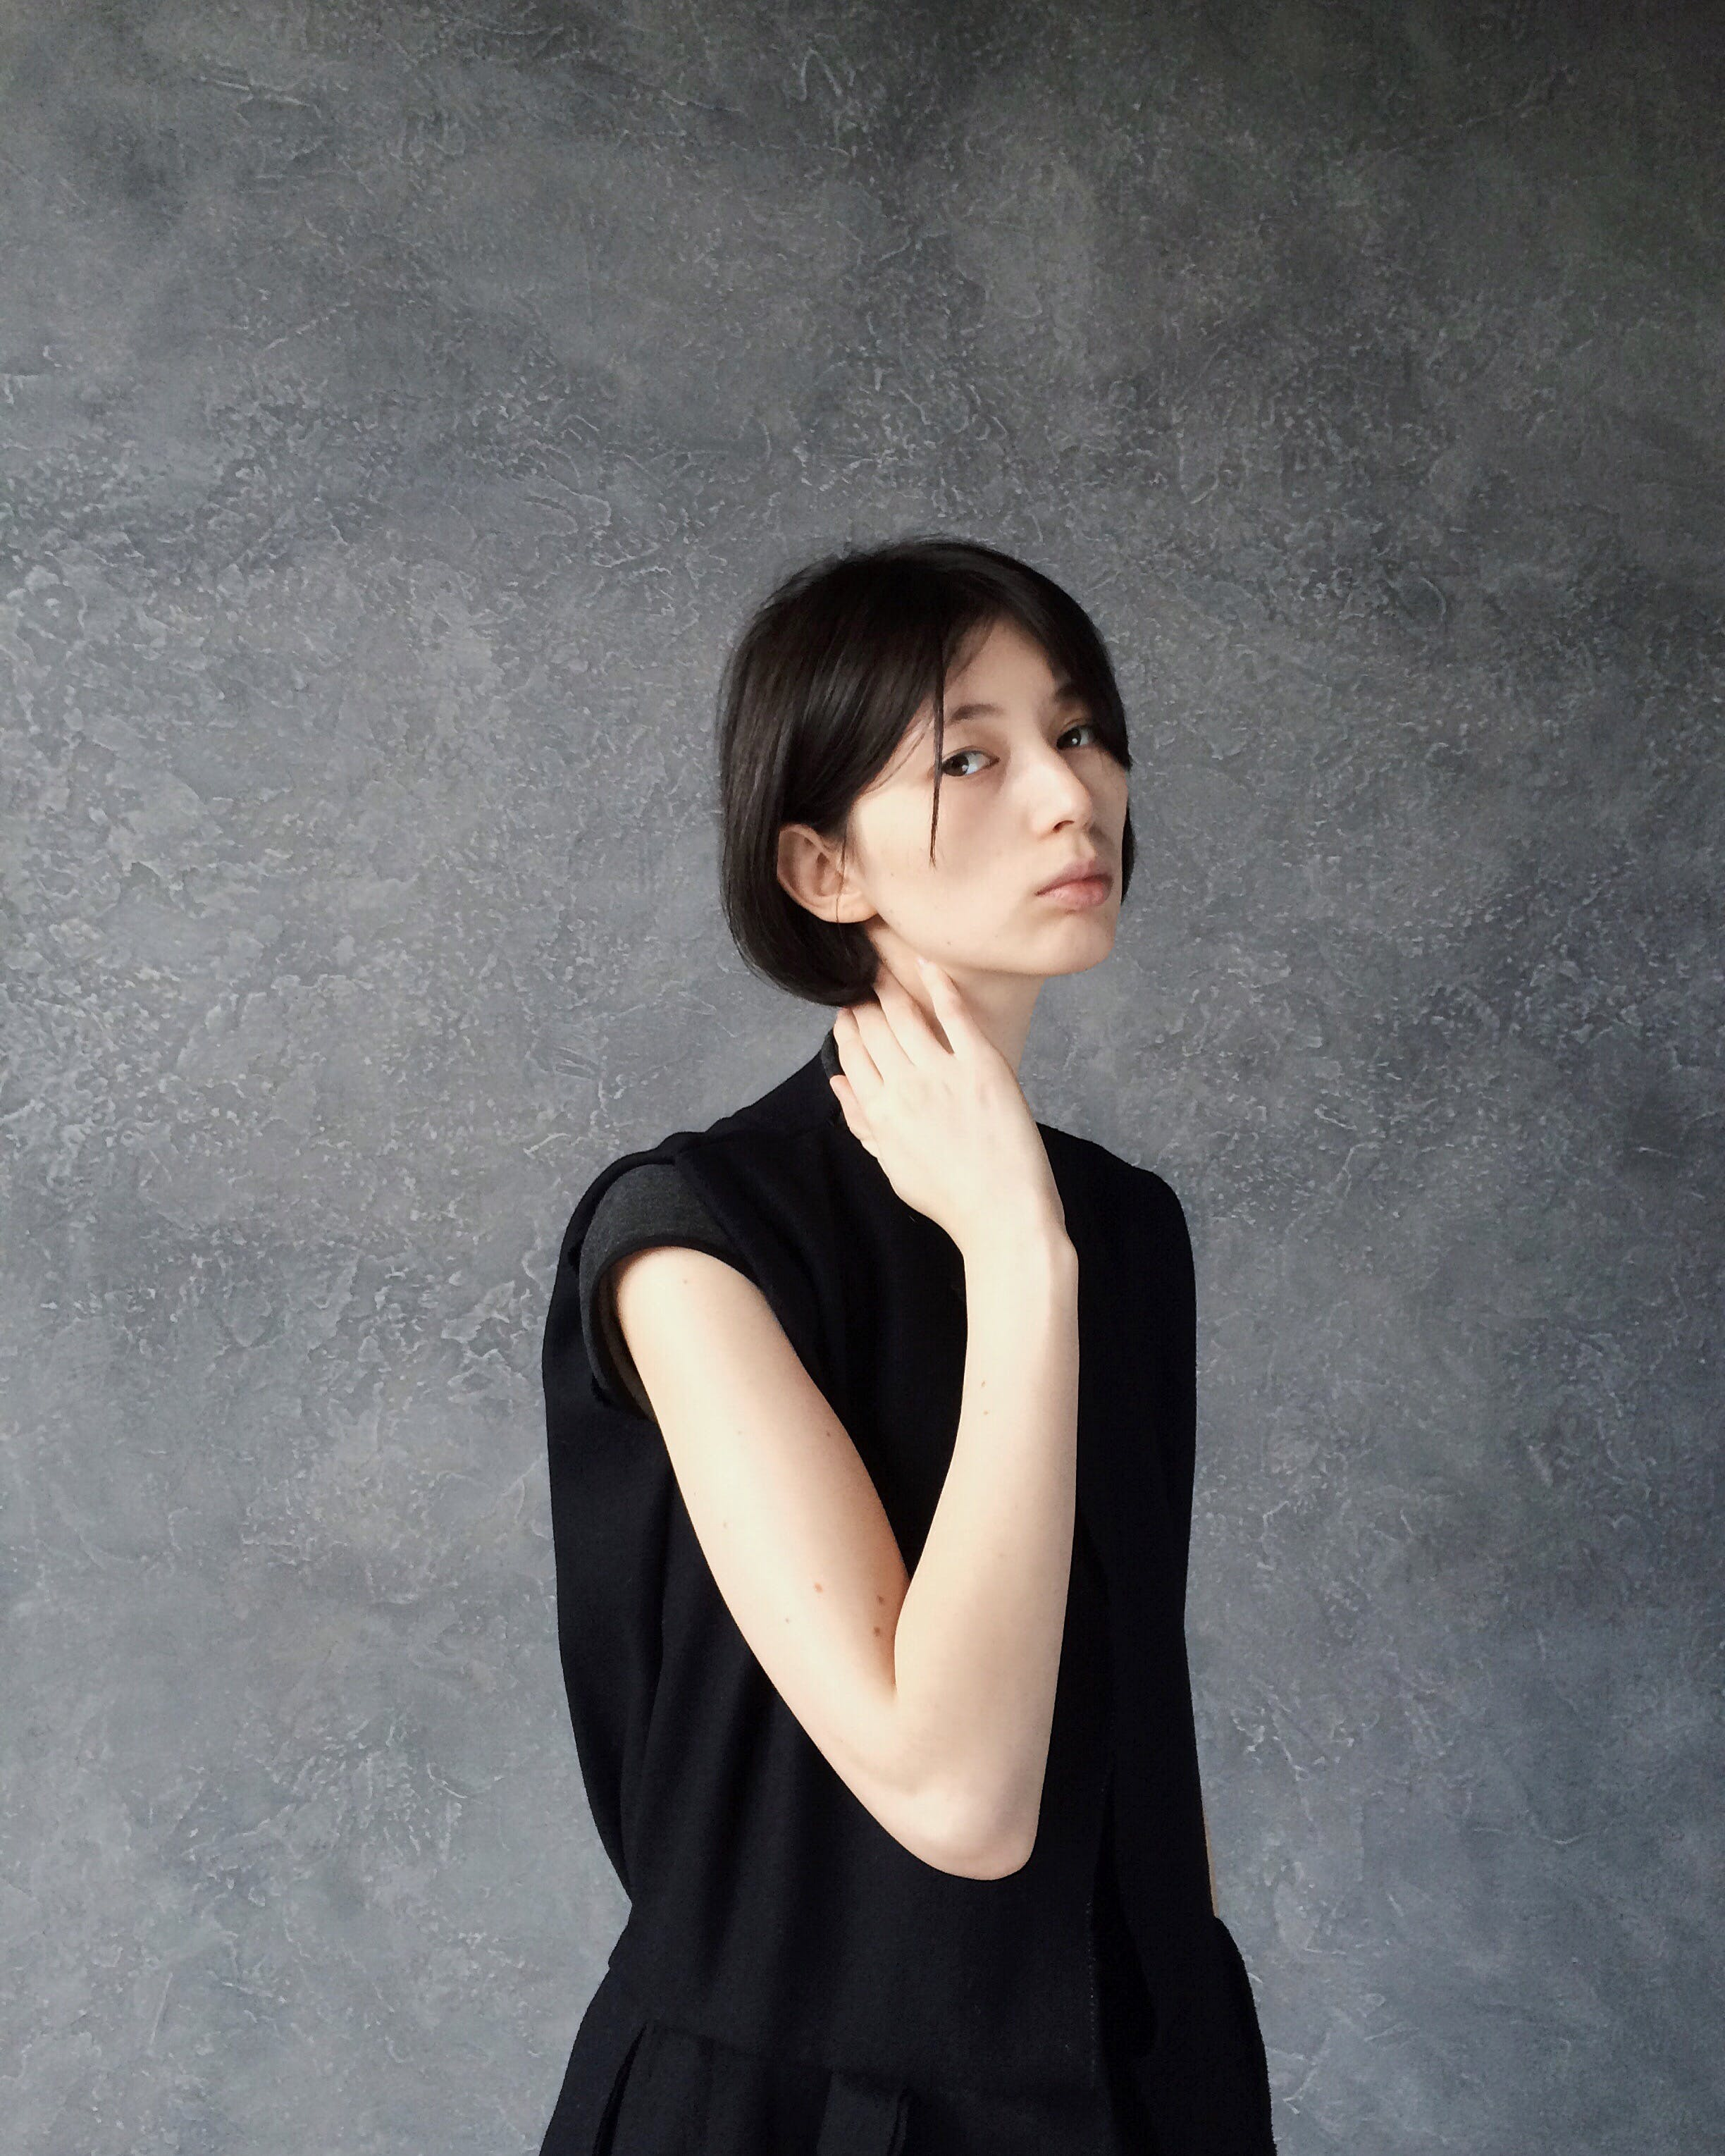 Woman in Black Top Standing Near Gray Wall